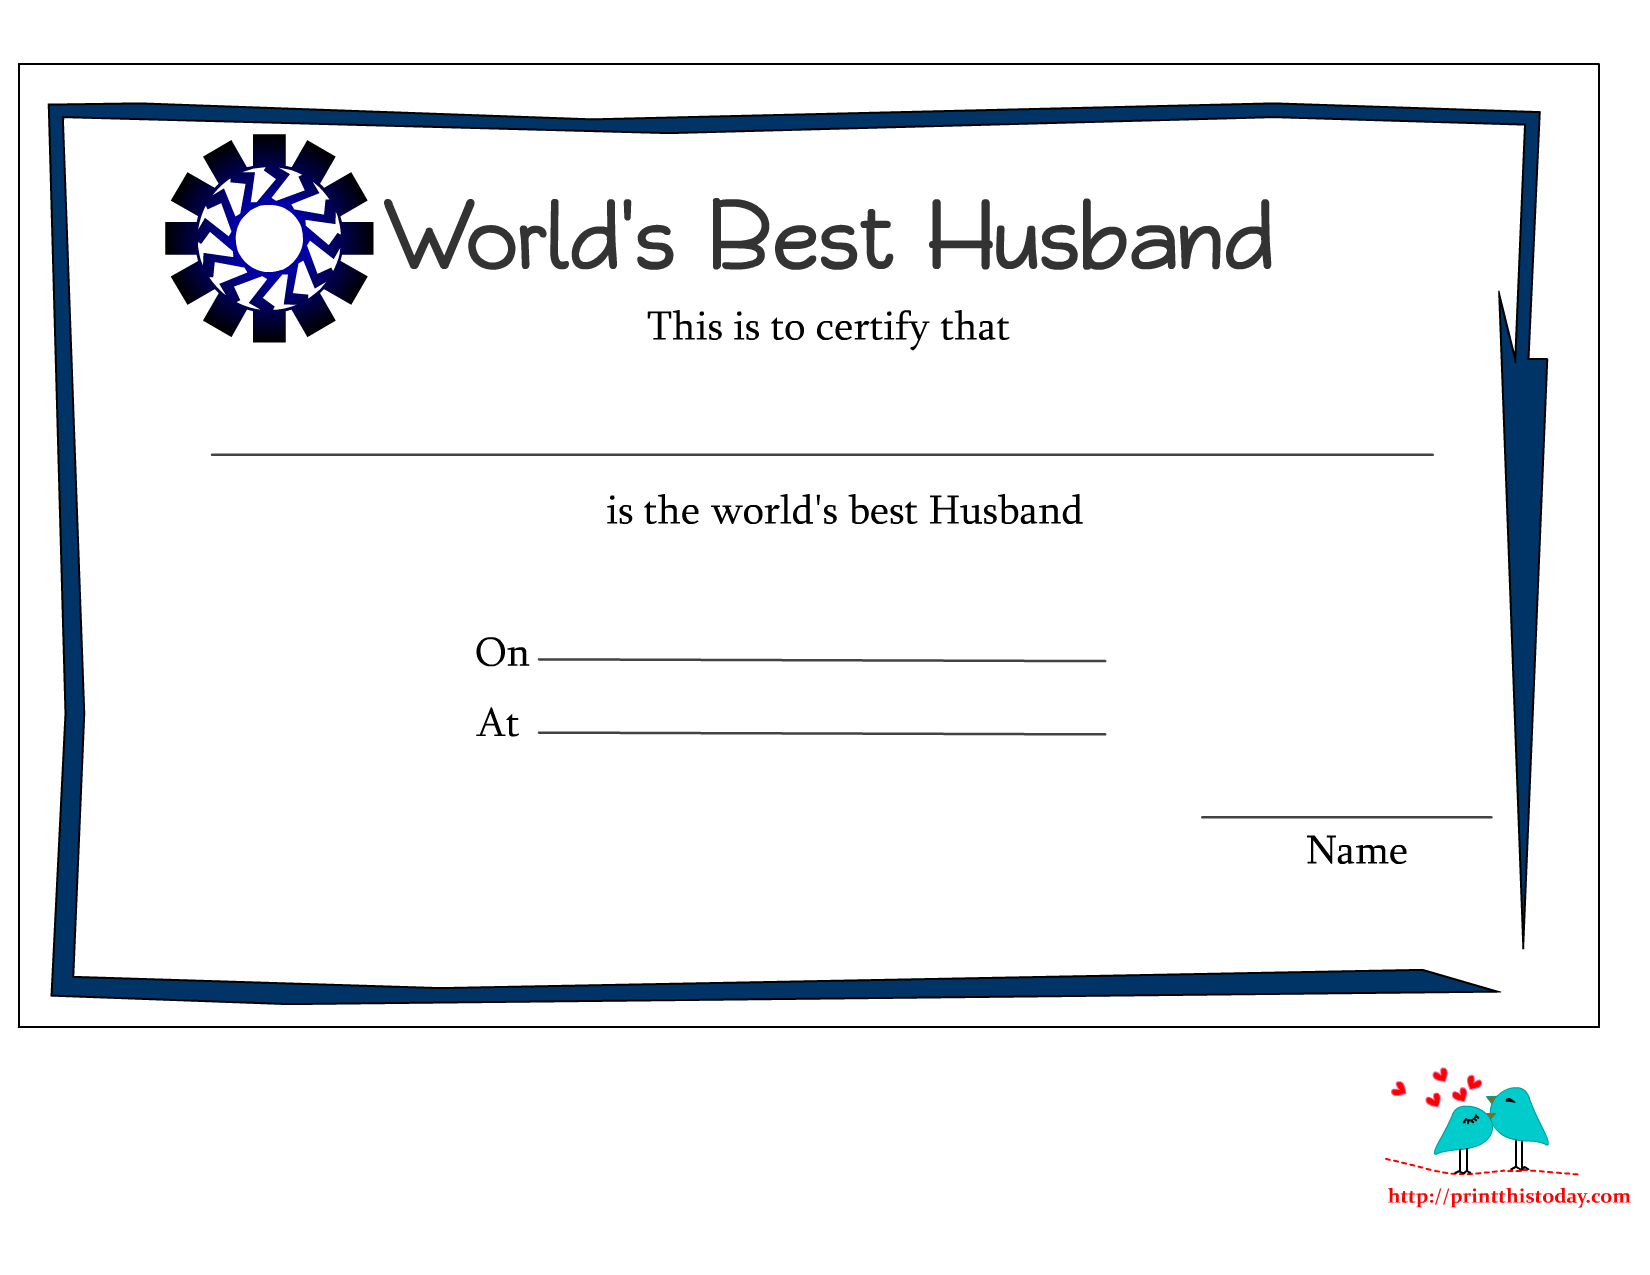 worlds best husband certificate with blue border